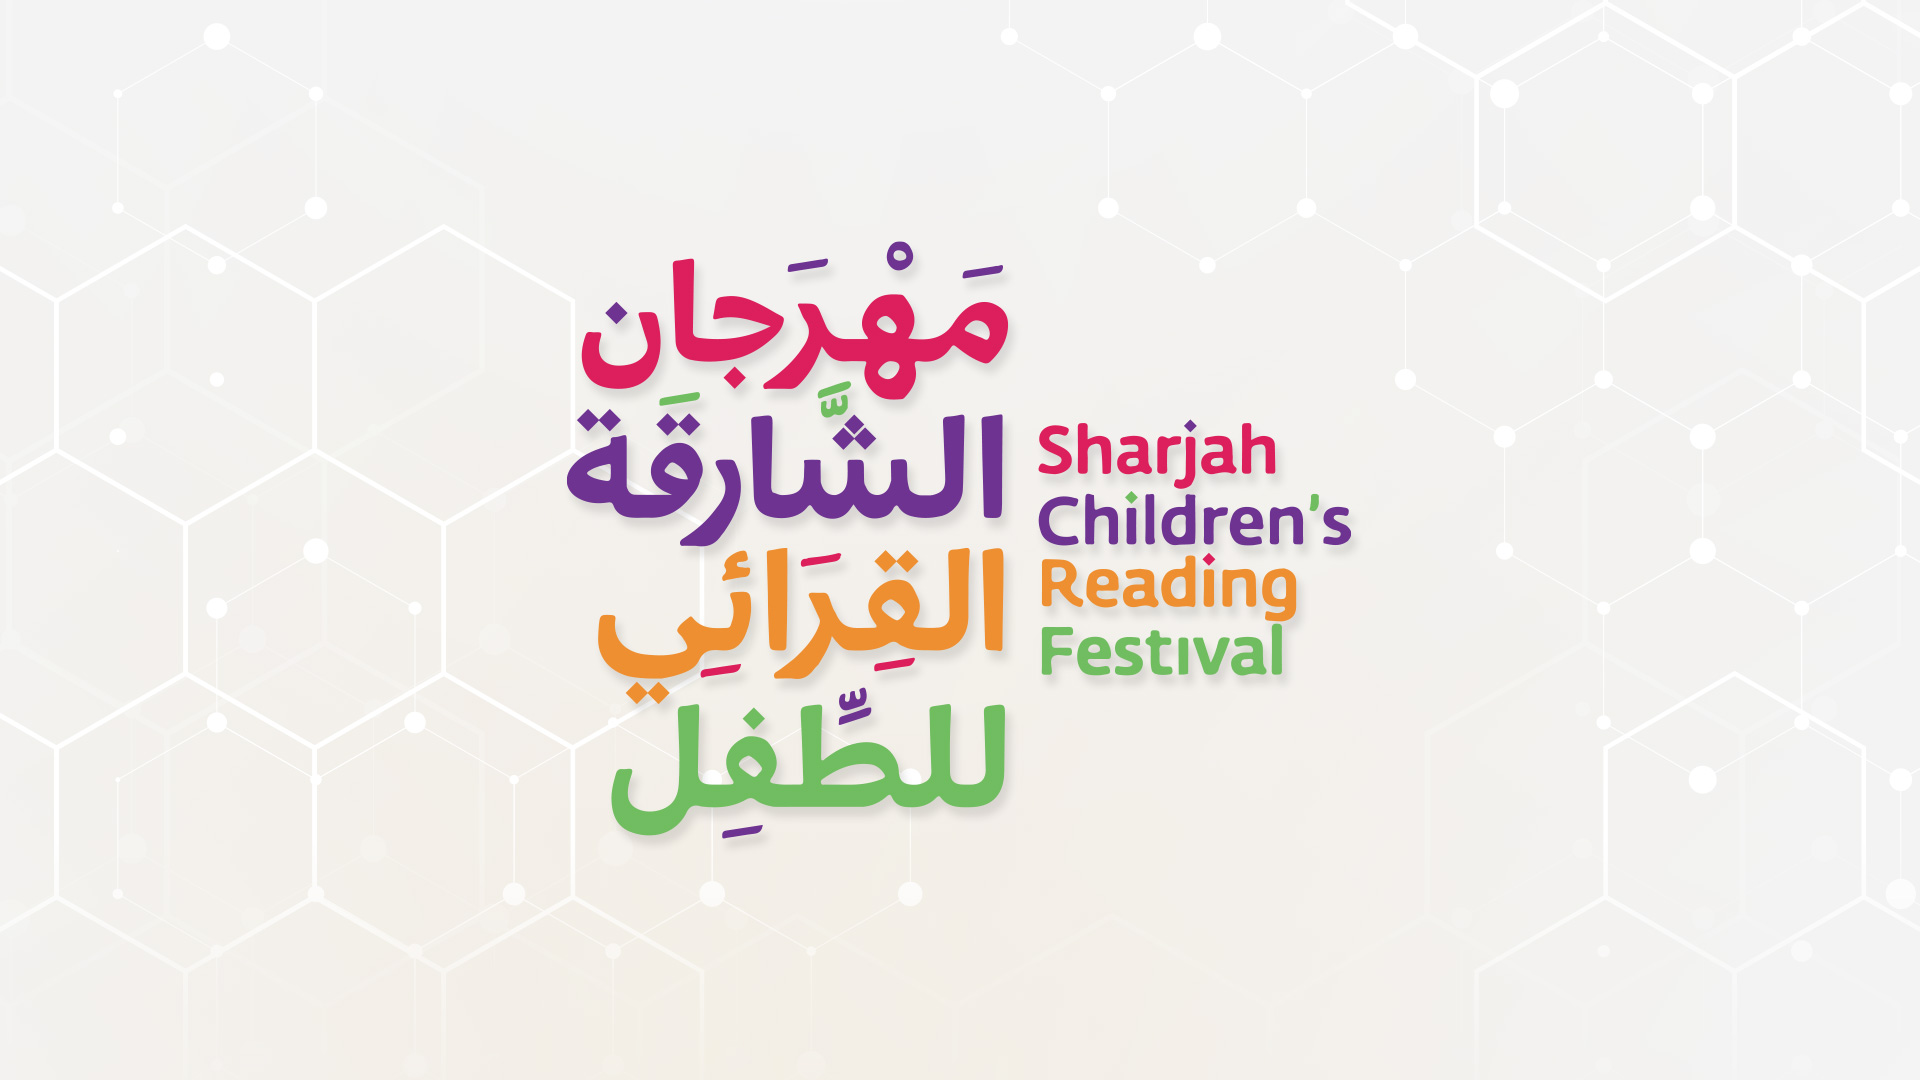 Children's Reading Festival